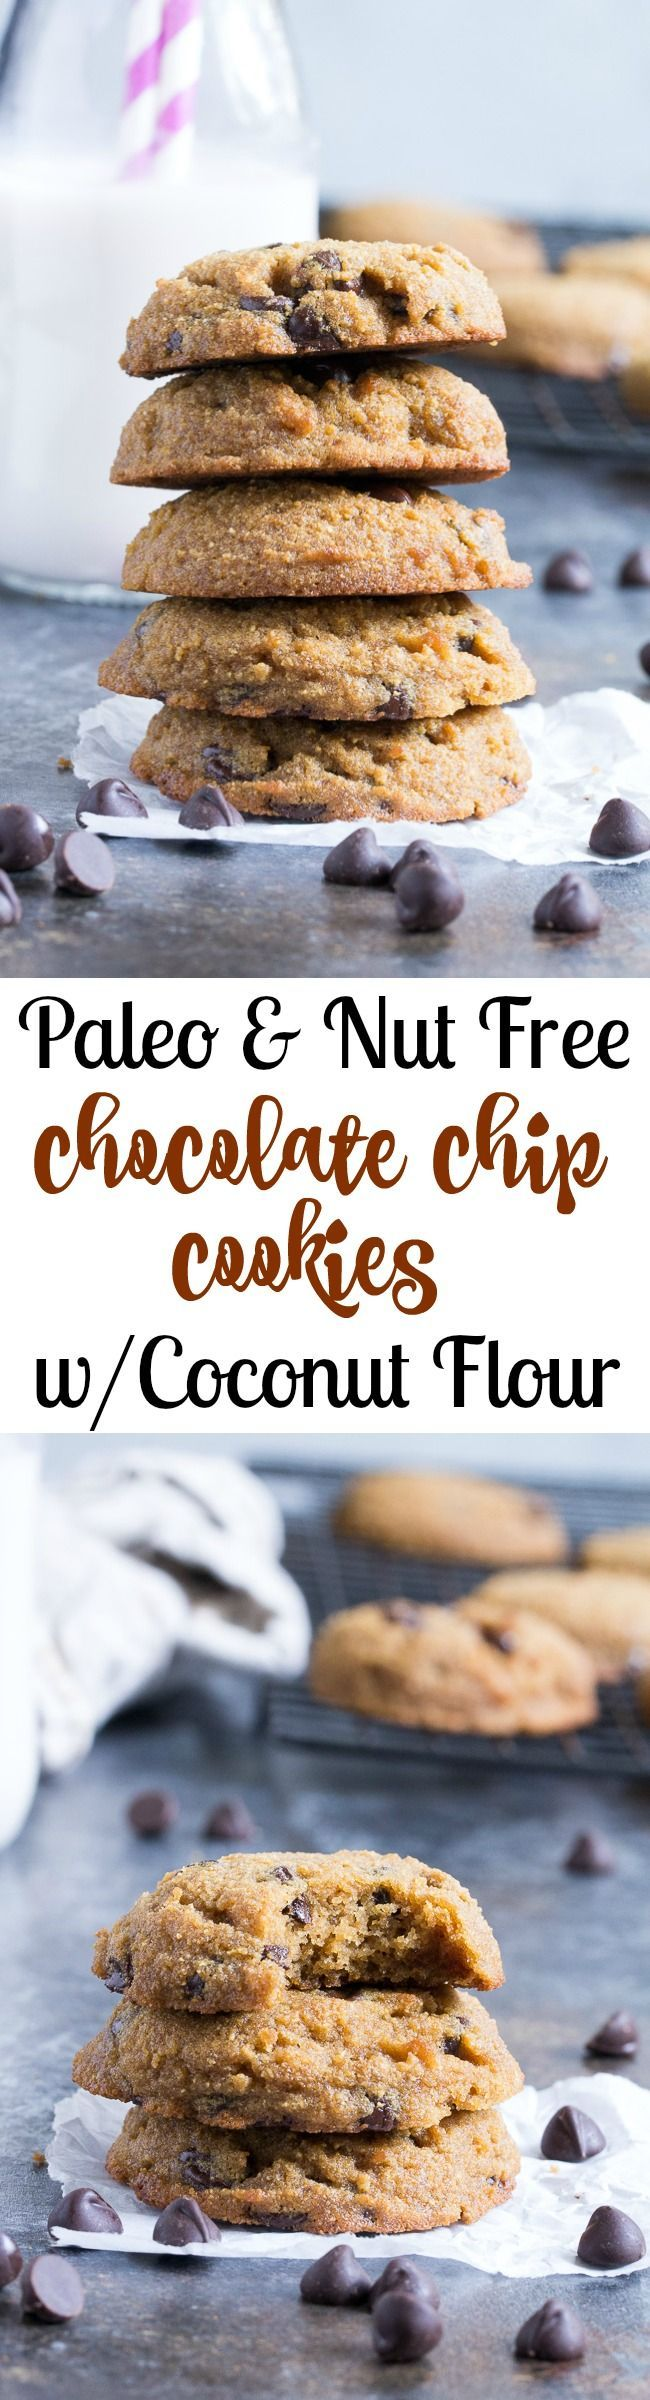 These simple coconut flour chocolate chip cookies are soft, cake-like and packed with chocolate!  They're grain free, nut free, dairy free, easy to make and irresistible!   Gluten-free, Paleo friendly and kid approved.